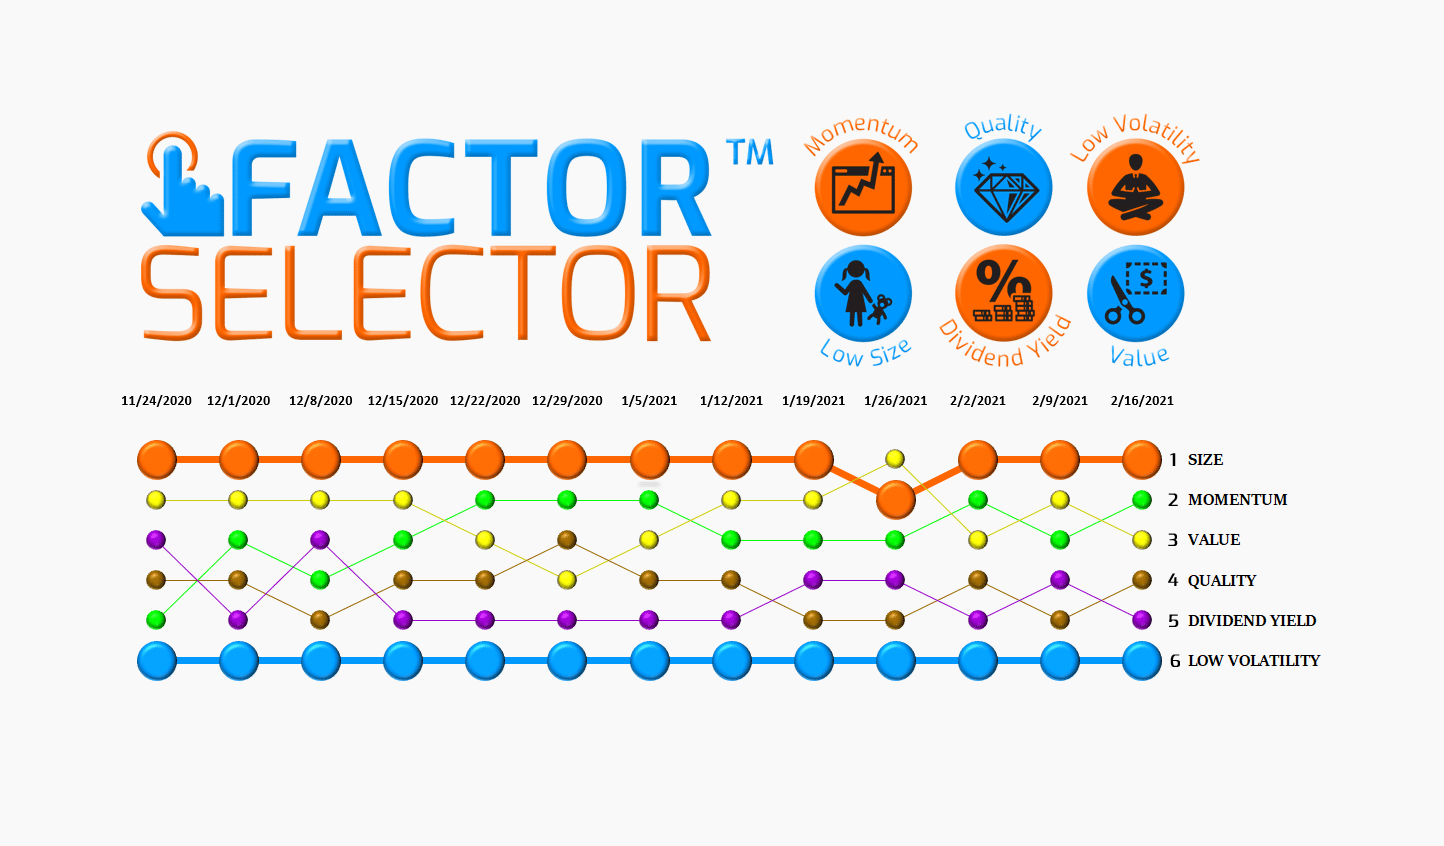 Factor Selector™  – 02/17/21 via @https://www.pinterest.com/market_scholars